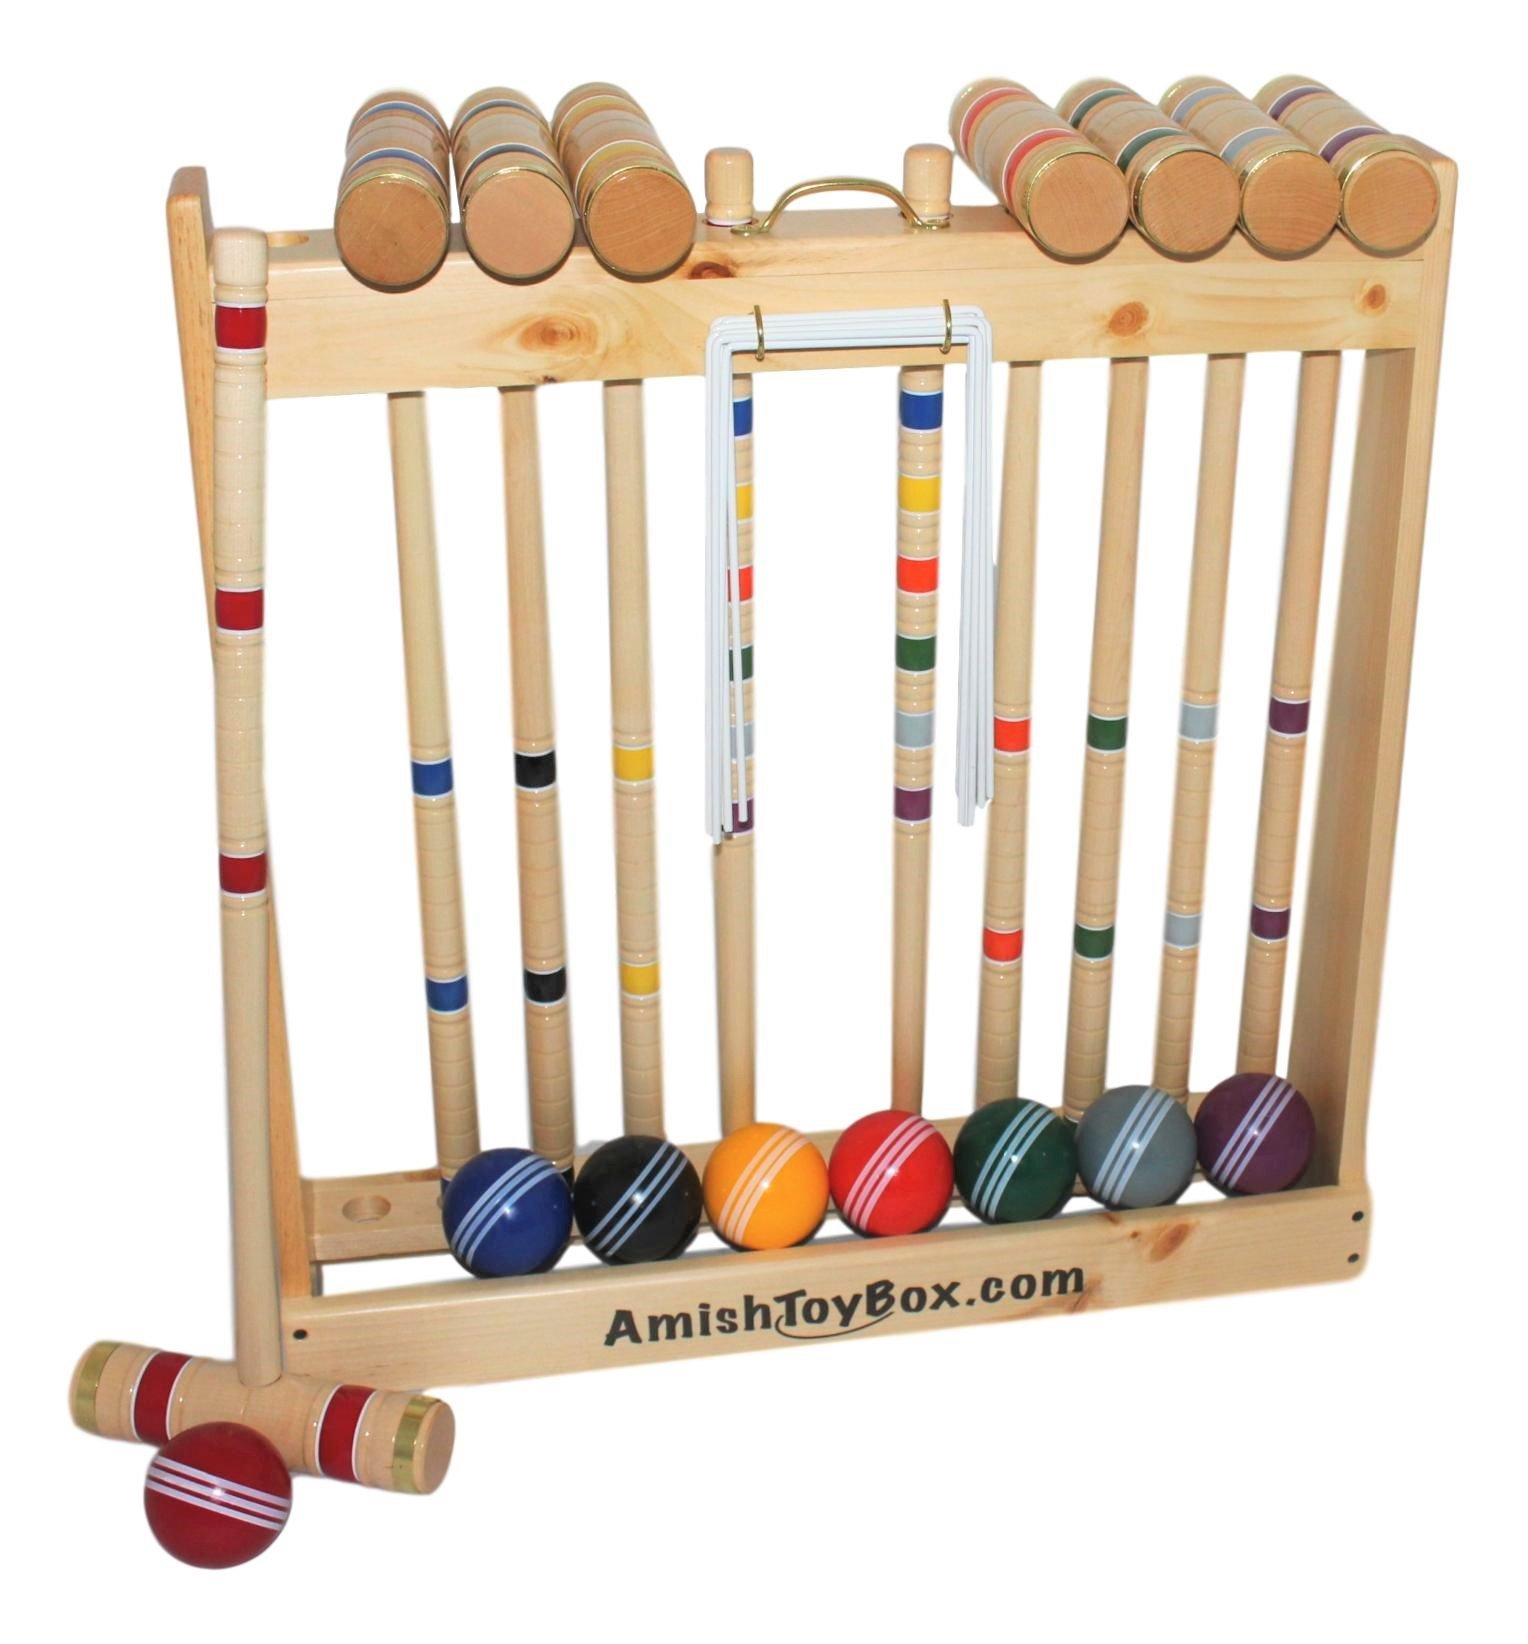 Amish-Made Deluxe Wooden Croquet Game Set, 8 Player (32'' Handles) by AmishToyBox.com